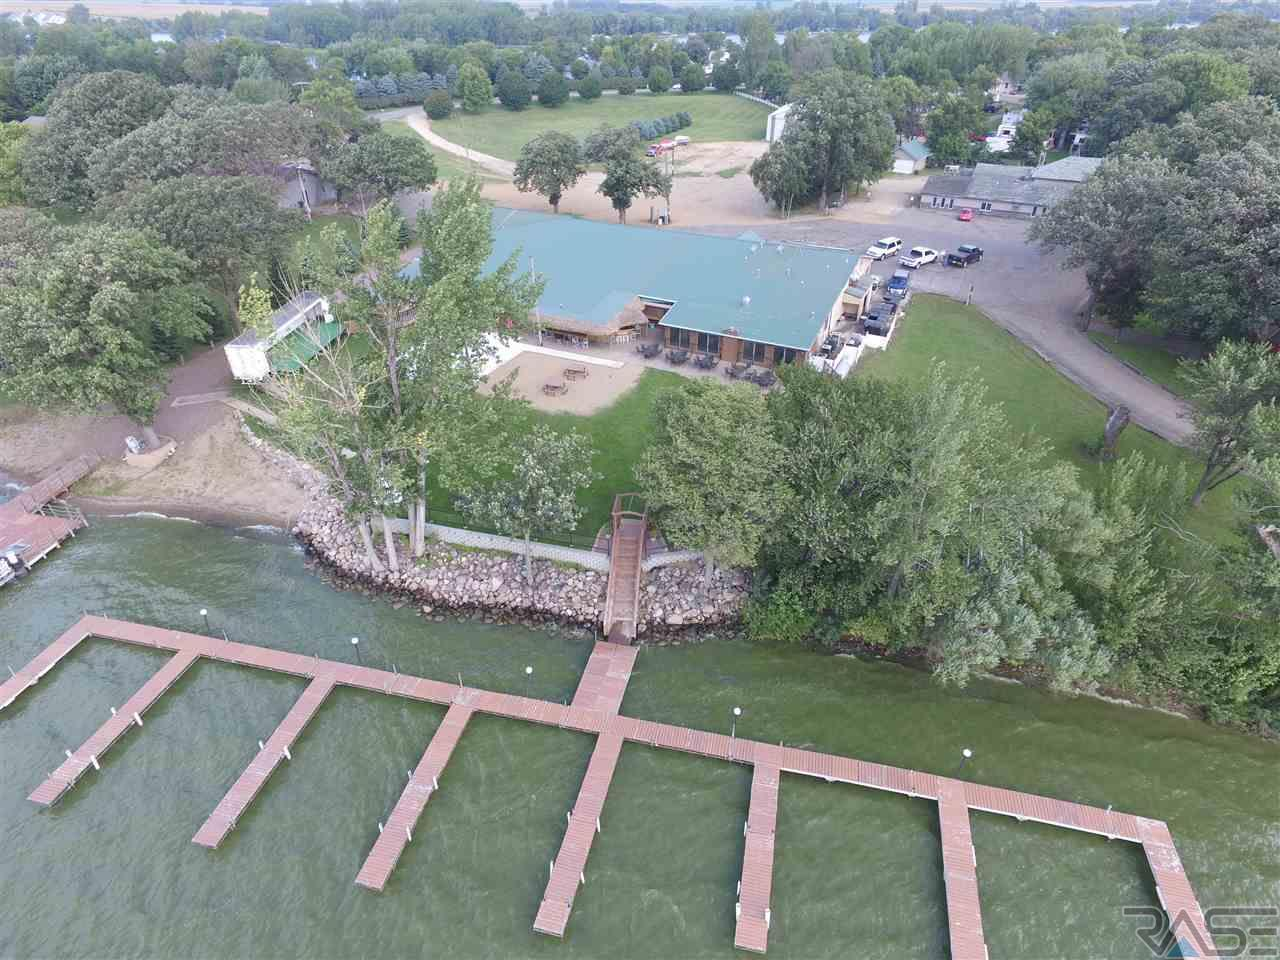 Southwest Minnesota's premiere Summer Resort.  This property features live music, banquet/ballroom, private party rooms, tiki bar, large kitchen, off-sale and gift shop.